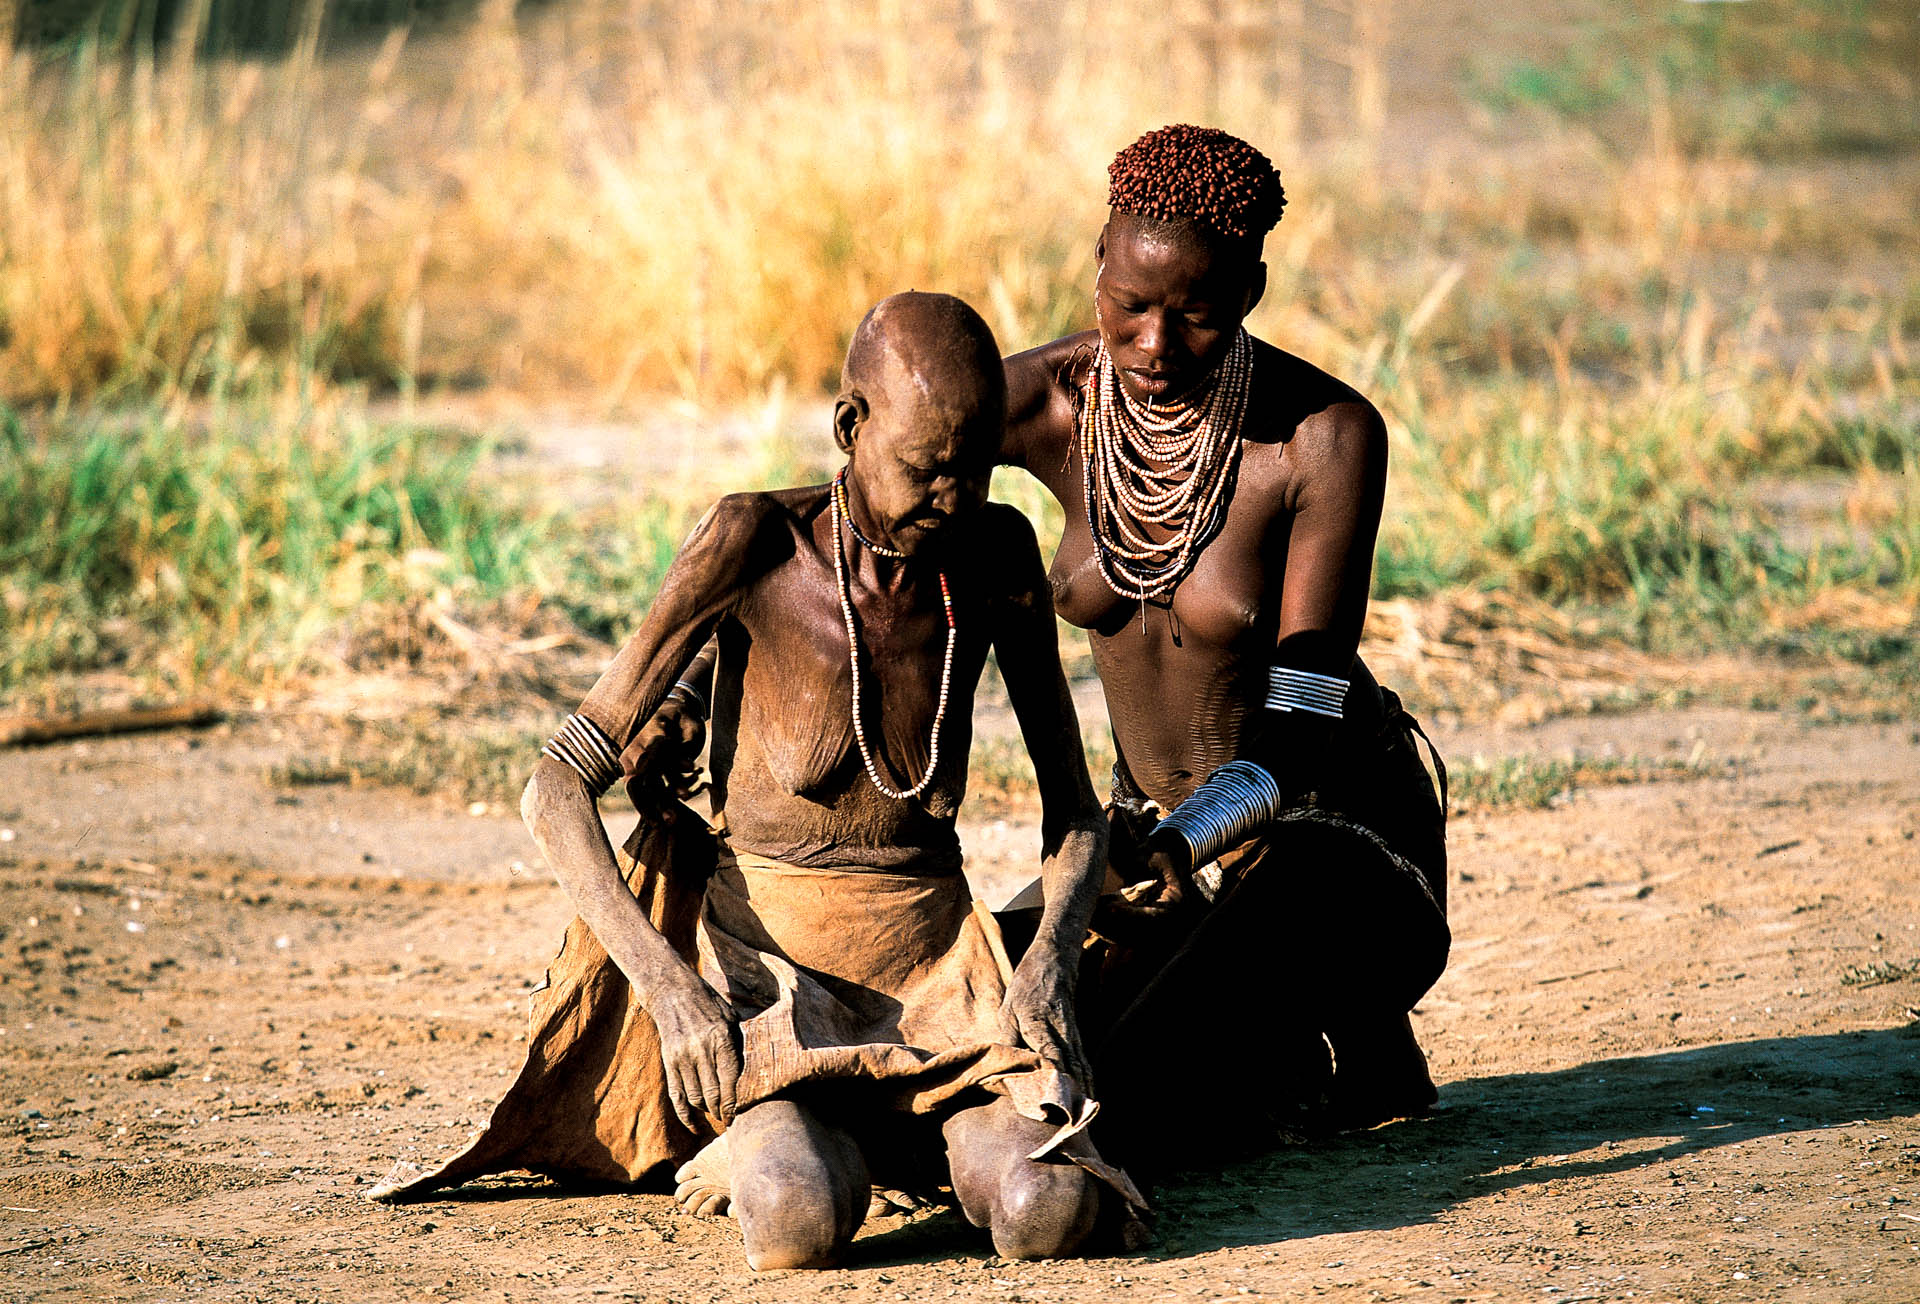 Karo region: the young women are usually entrusted with caring for the elderly members of their group.